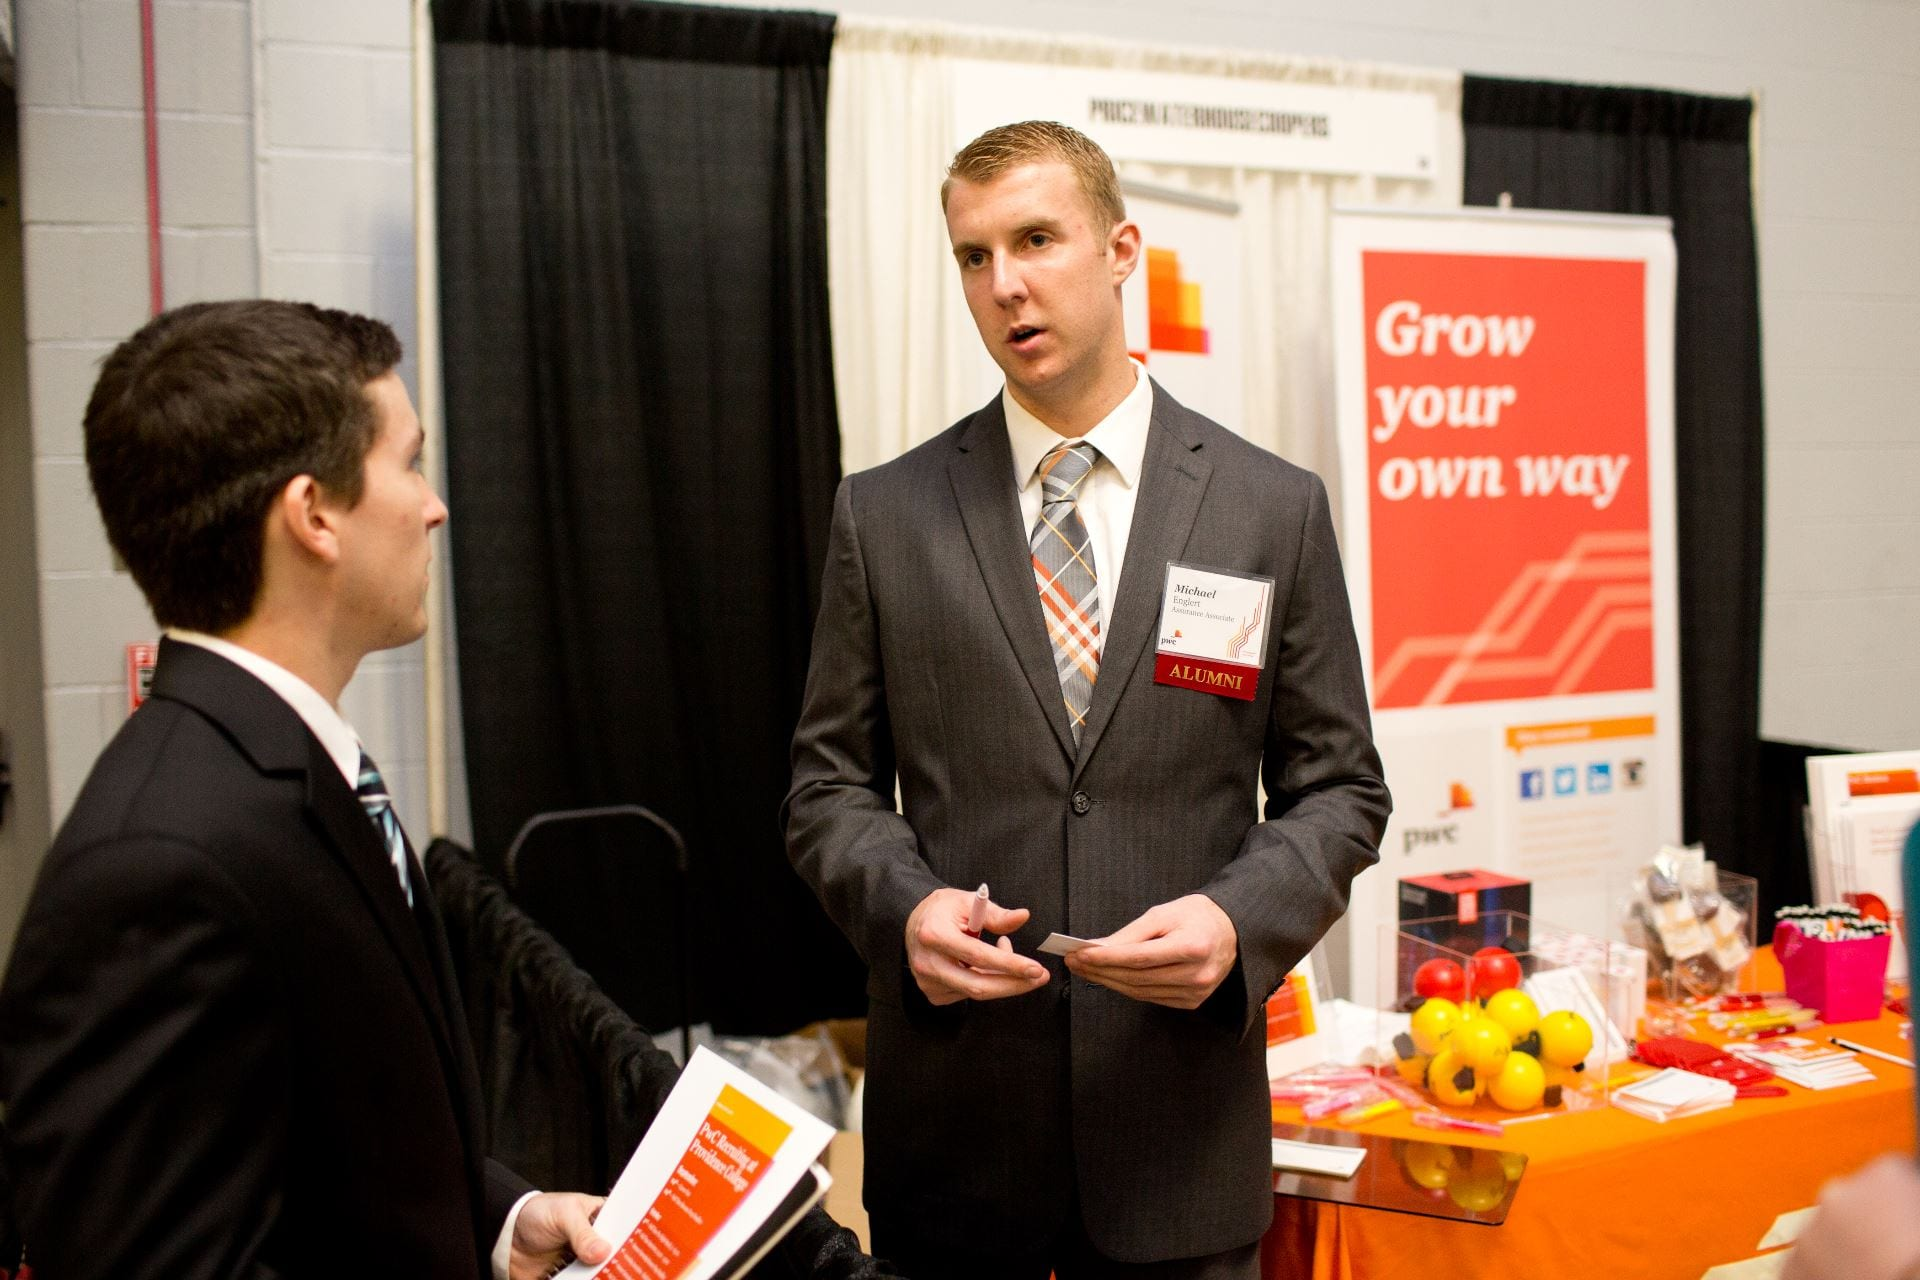 A student interacts with a current PwC employee and PC graduate about potential career opportunities.